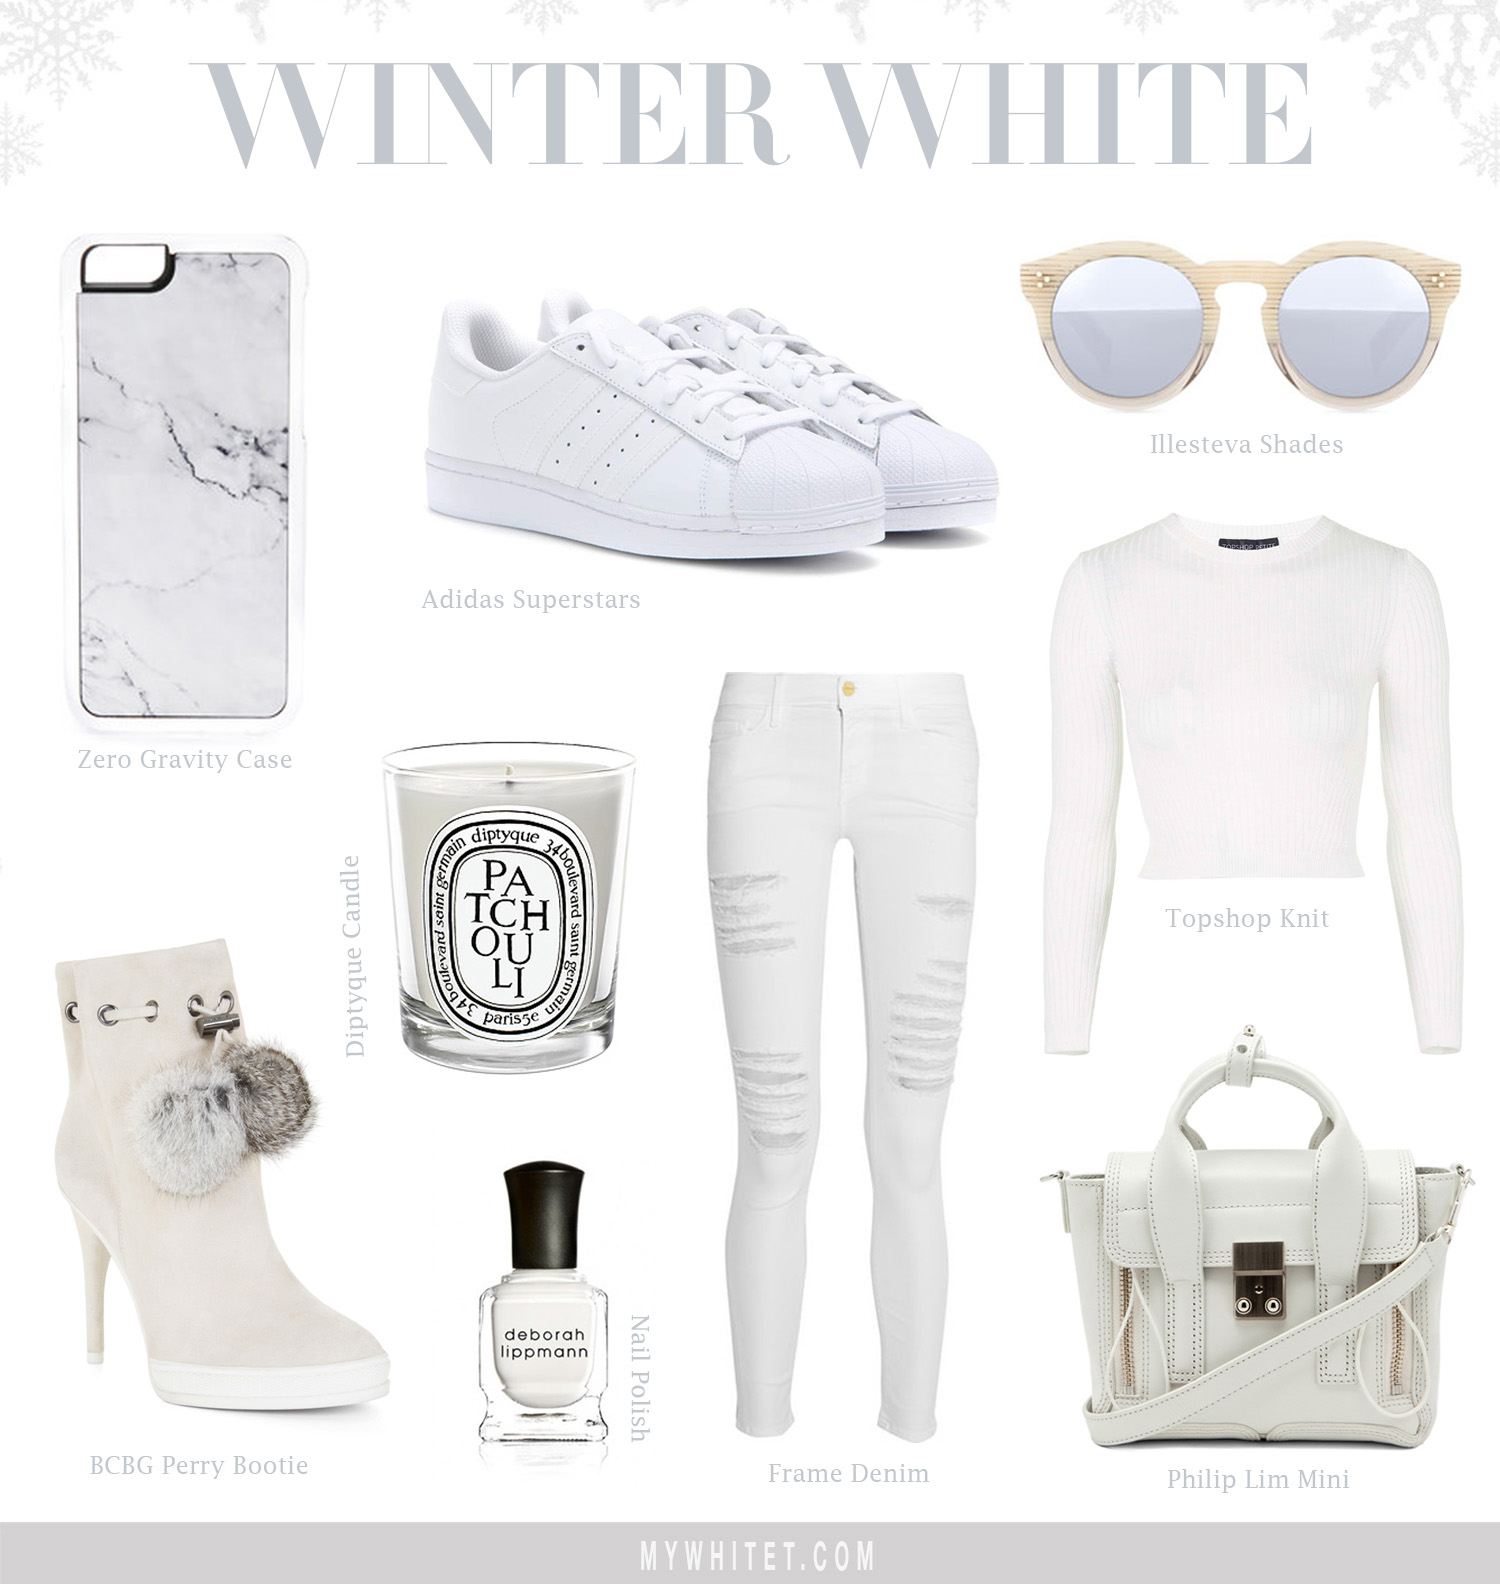 Jessi Malay's Winter White Collage